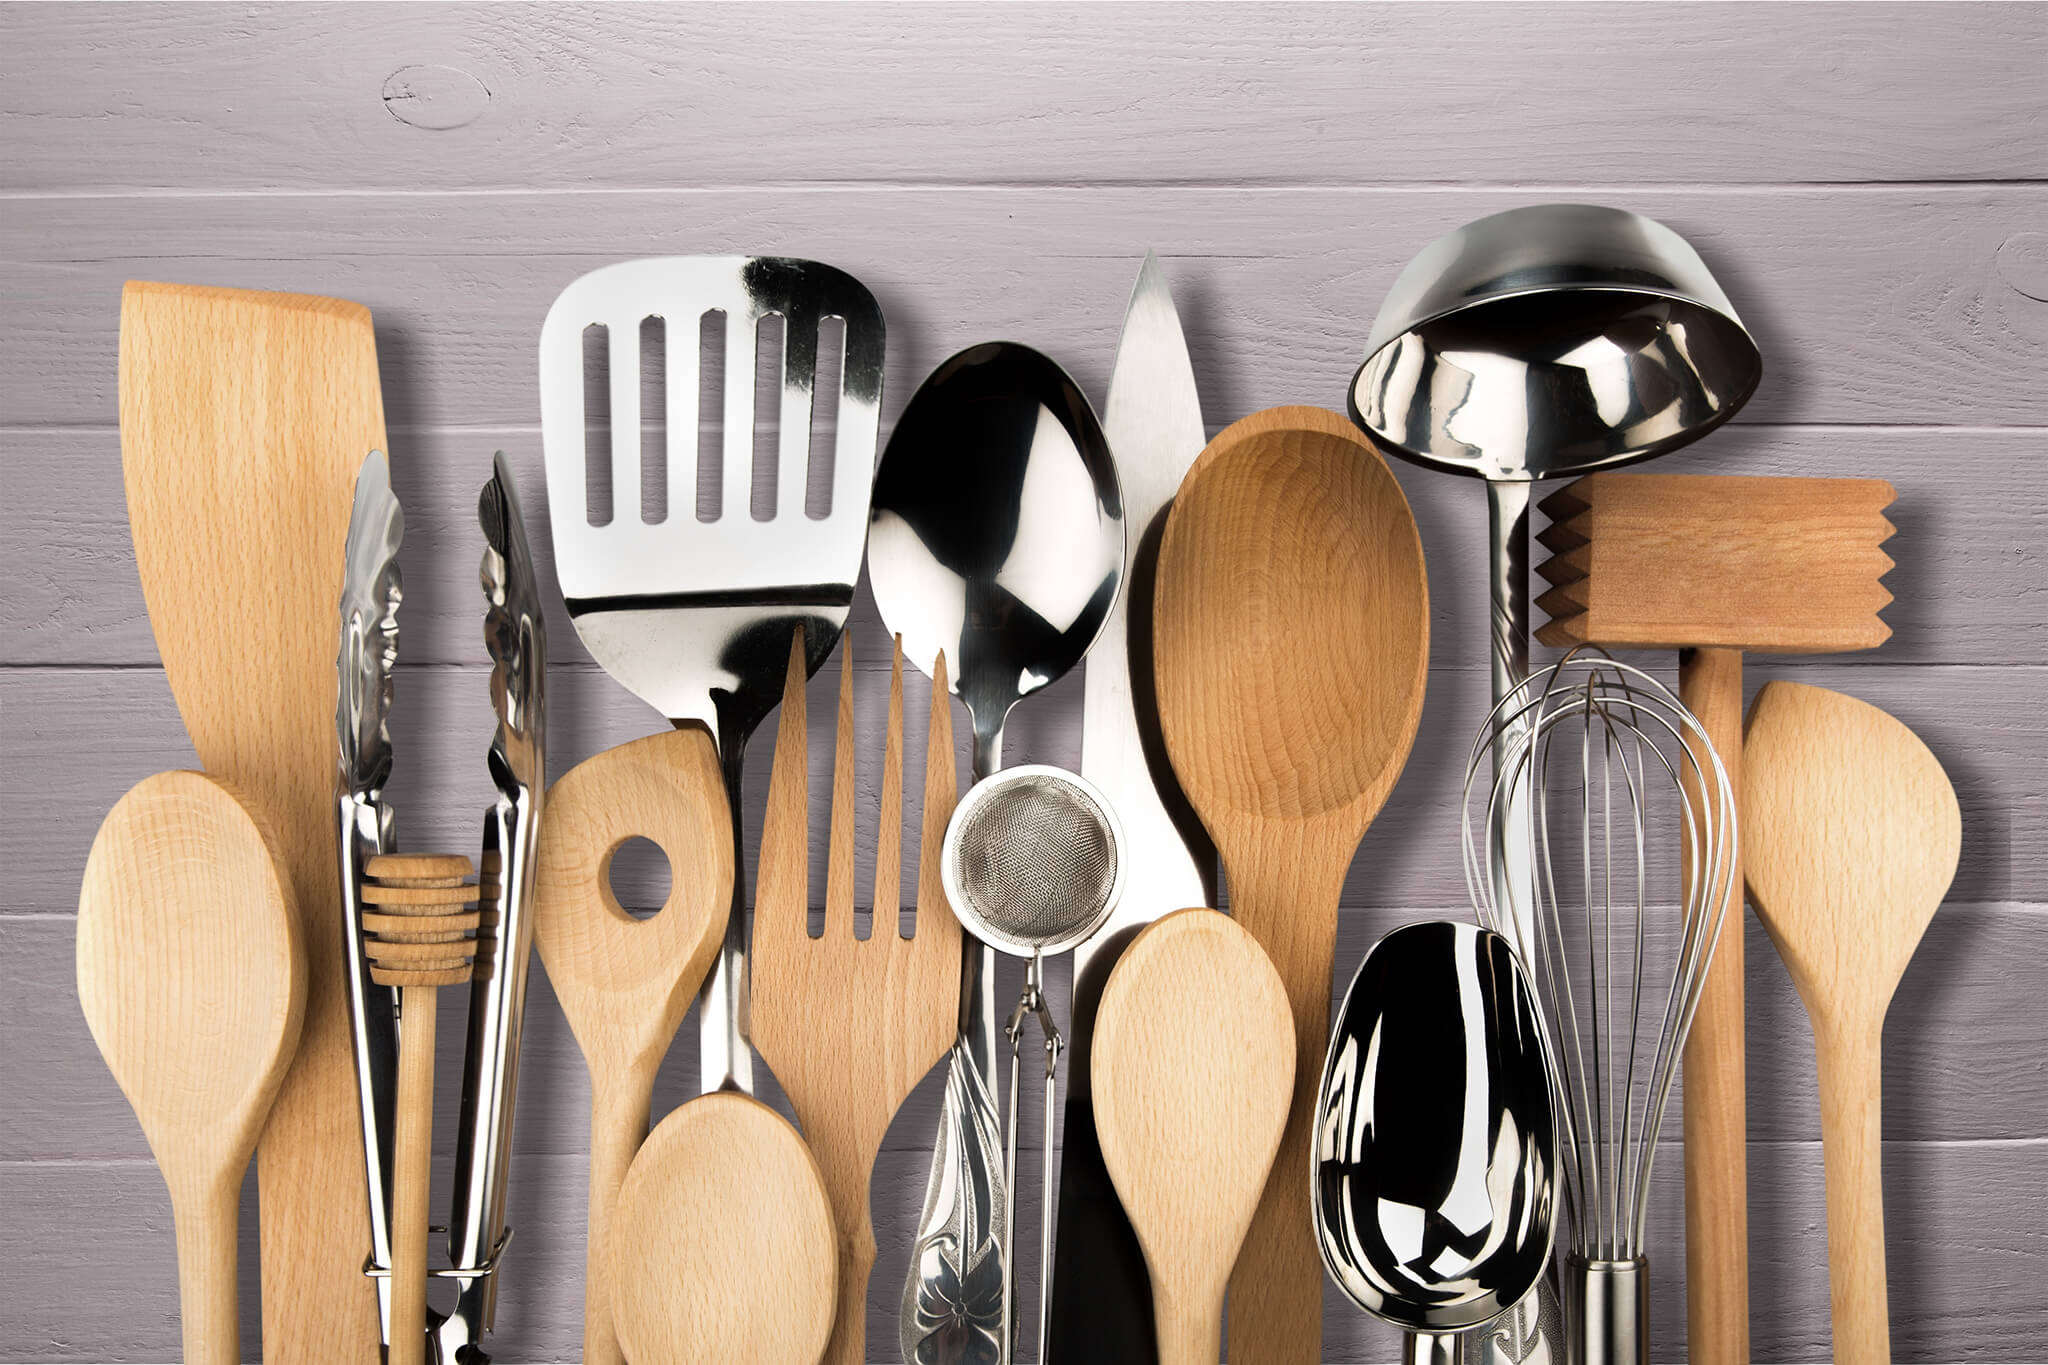 Wusthof Kitchen Utensils – Tips, Features & Recommendations